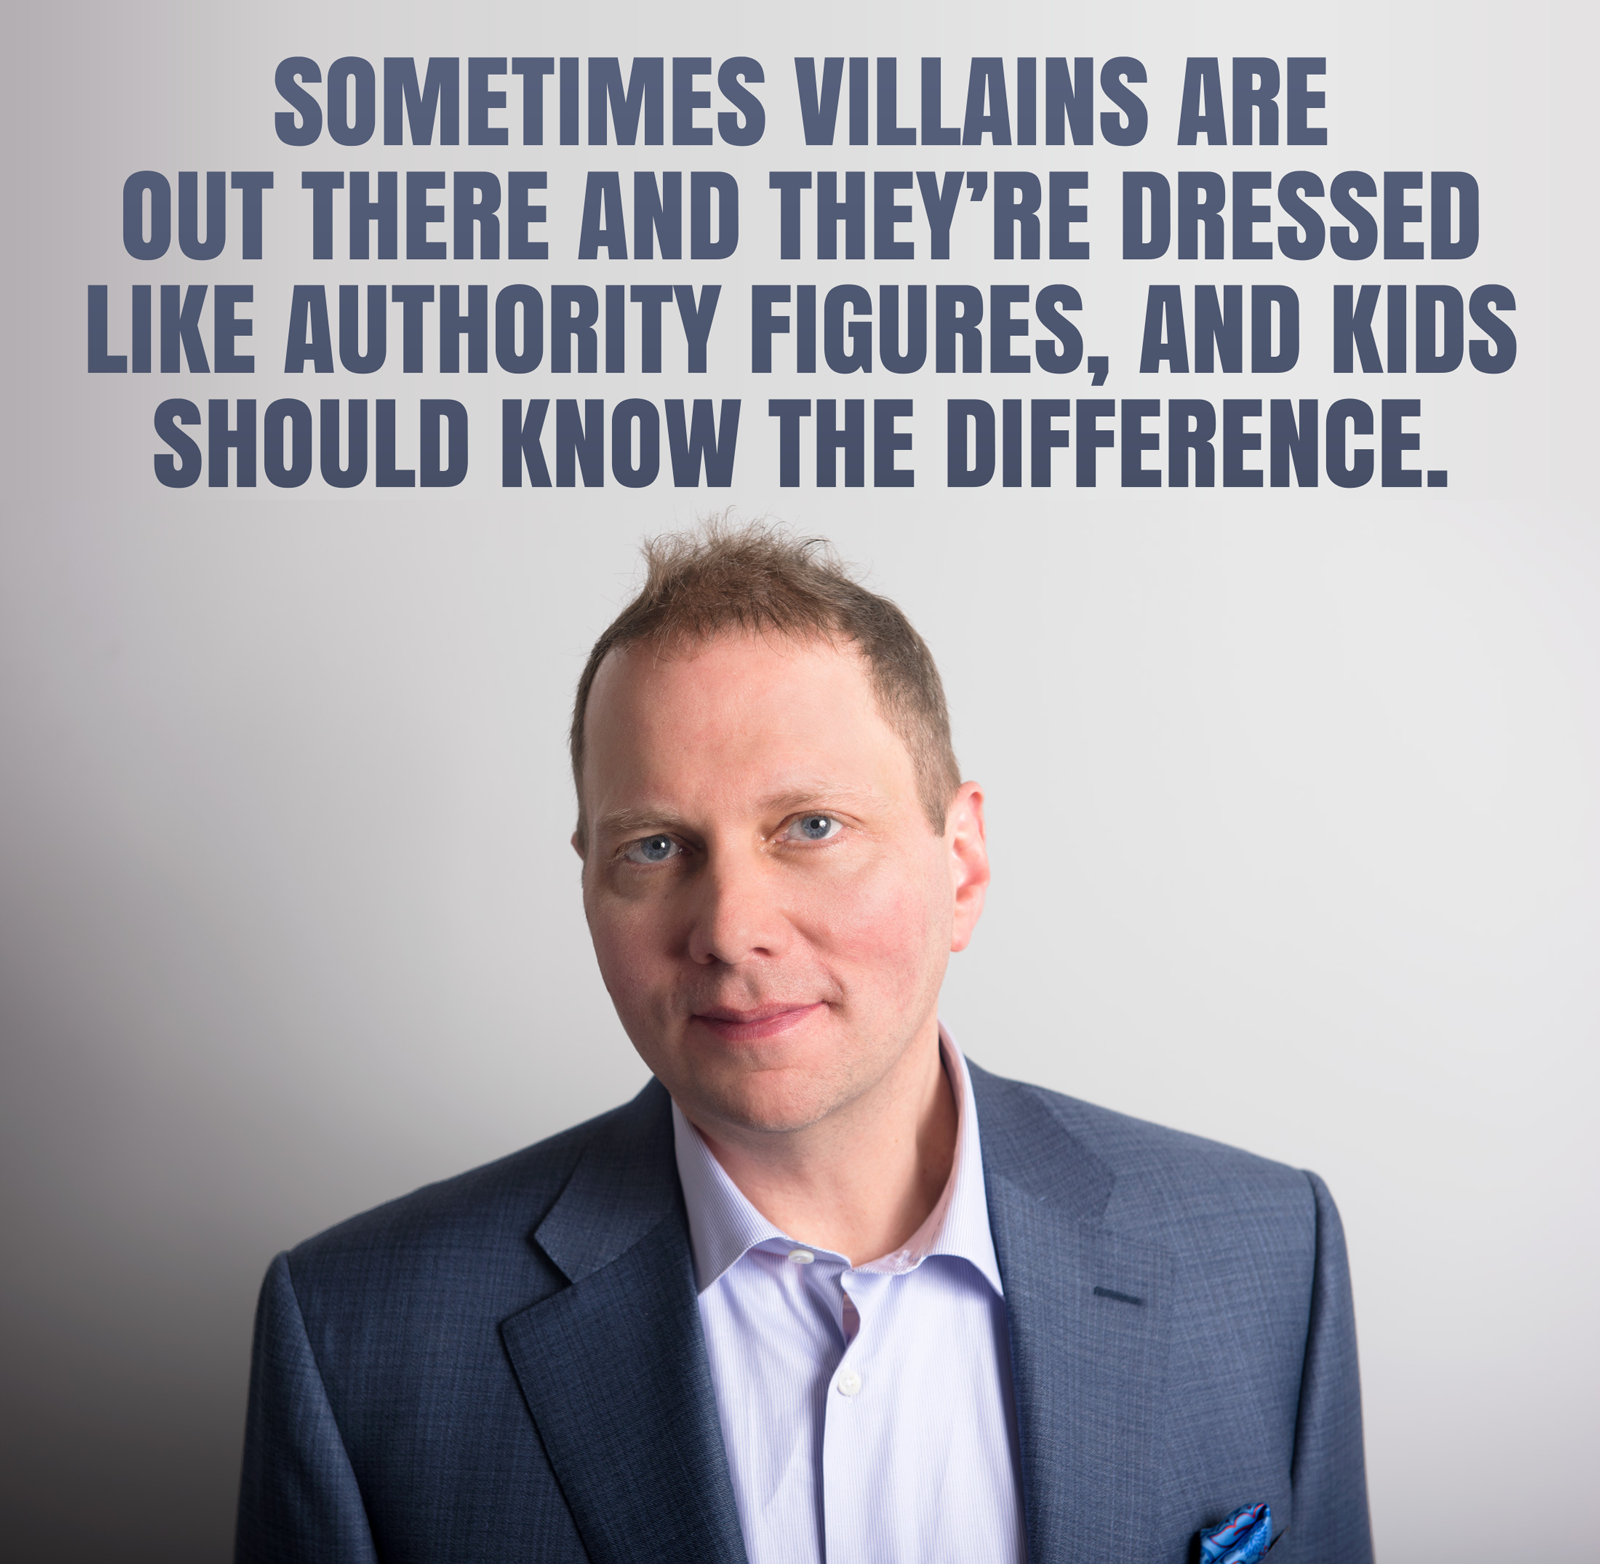 """The Author Of """"Captain Underpants"""" On Why Kids Should Question Authority"""